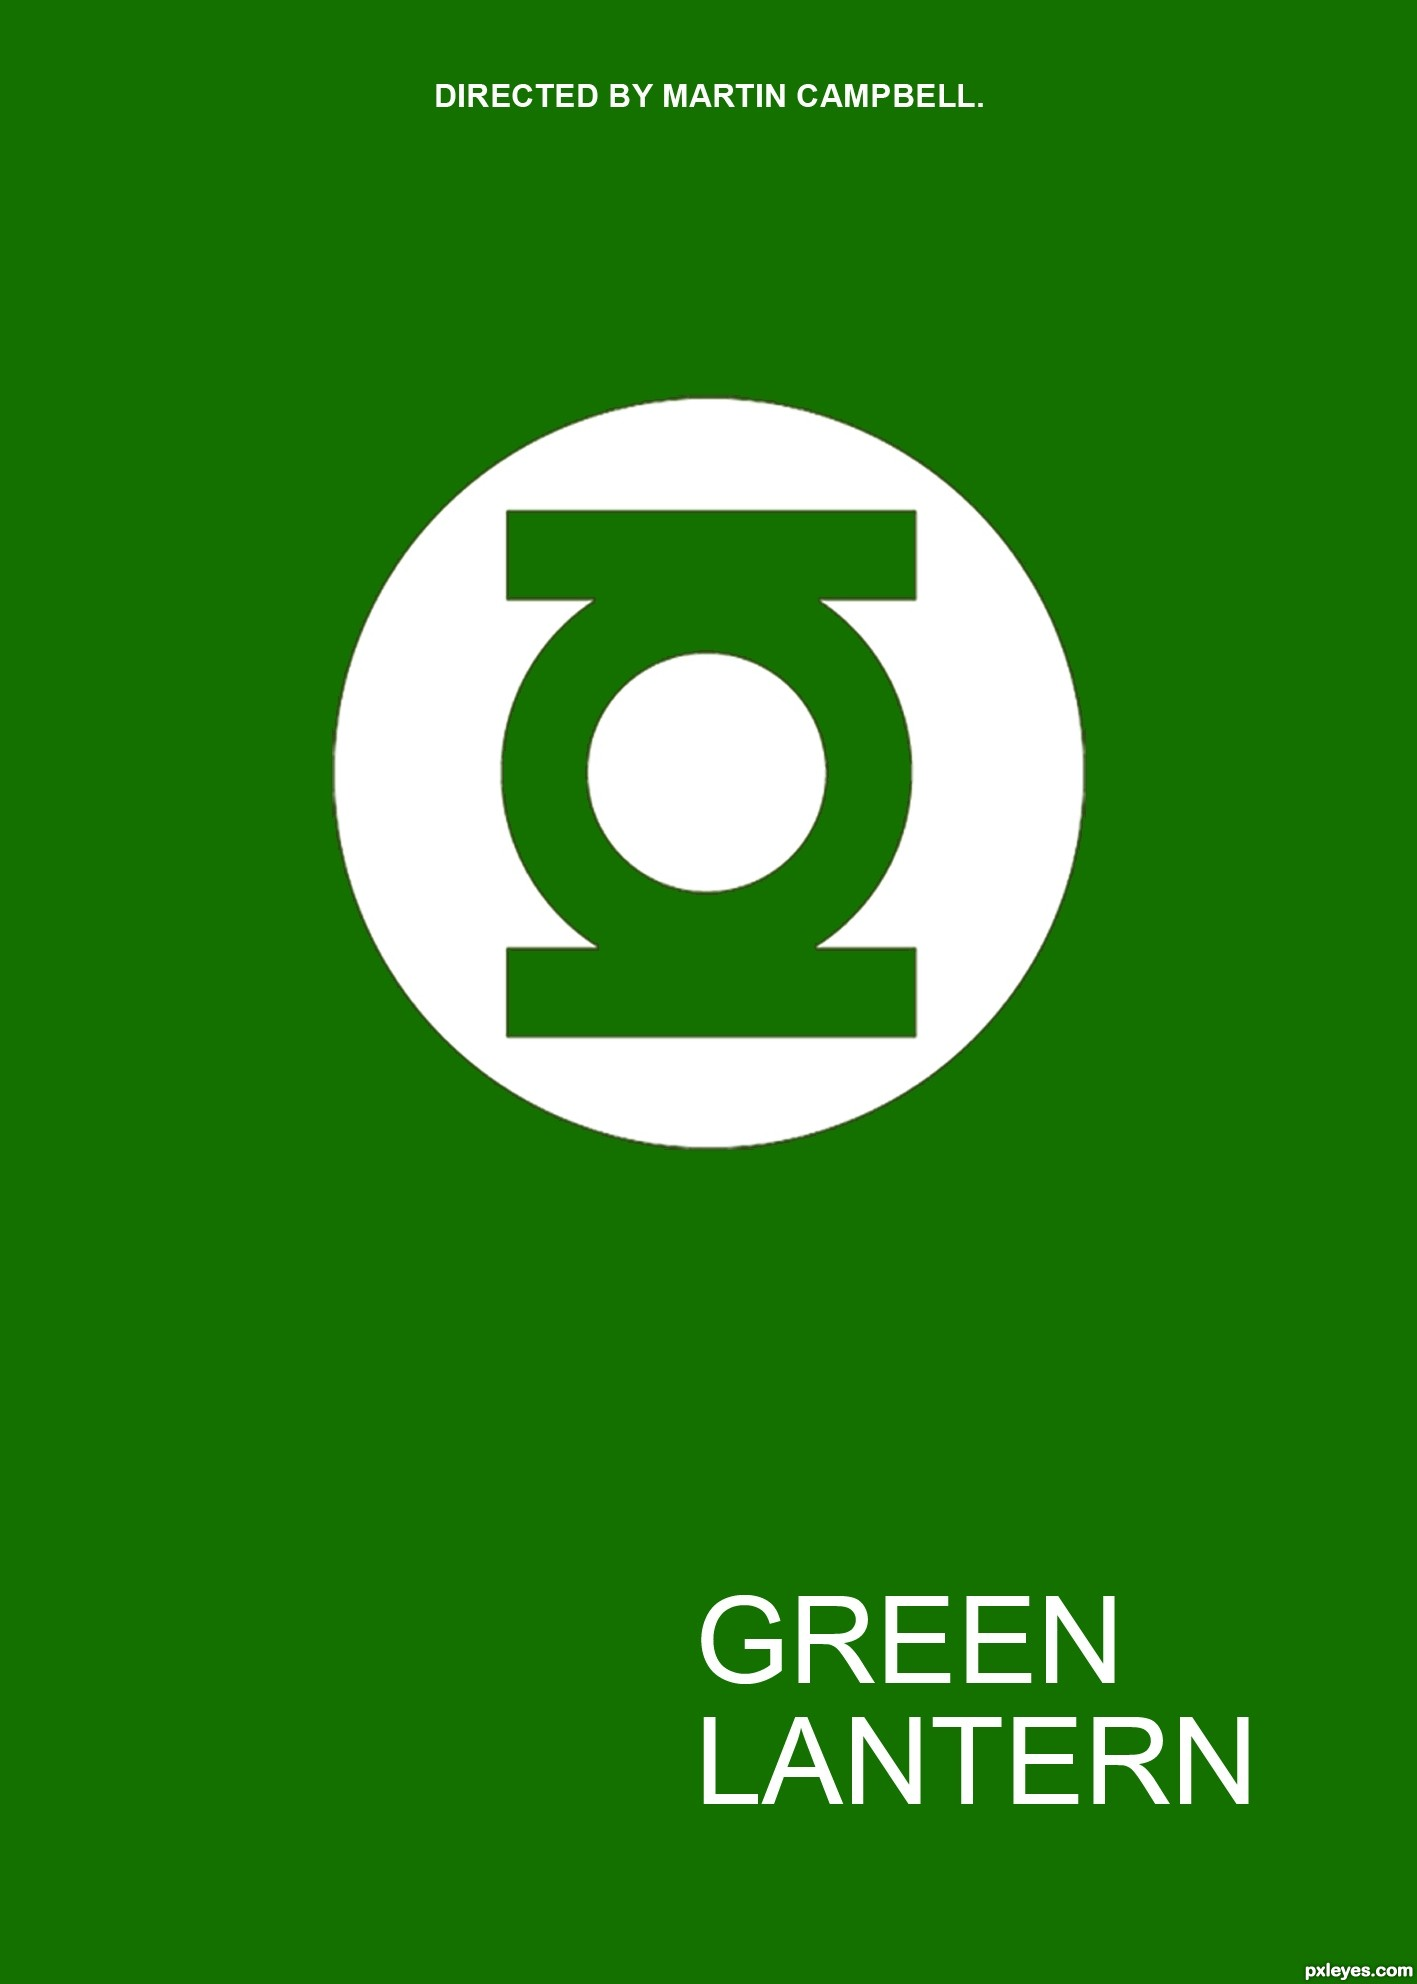 Green Lantern Picture By Loopyluv For Minimalist Poster Photoshop